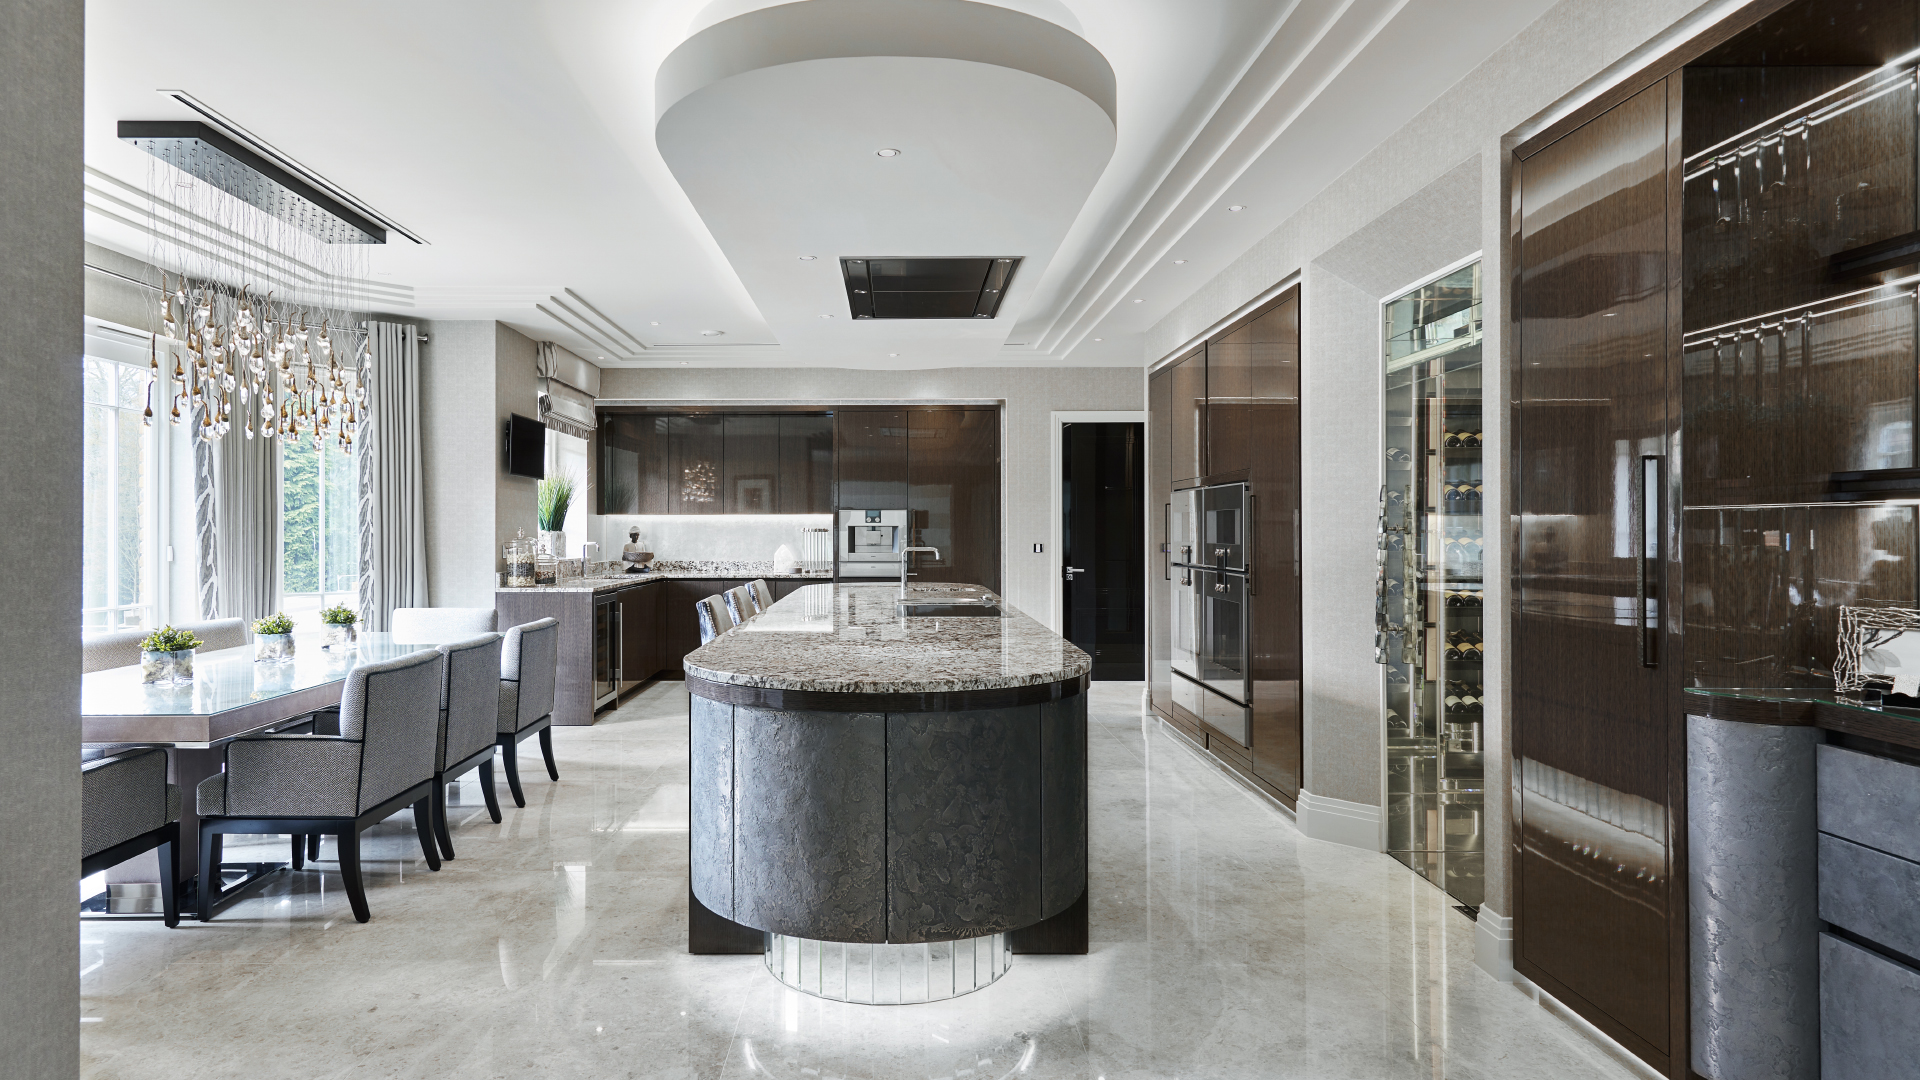 Luxury new Kitchen, St. George's Hill, Surrey | Extreme Design